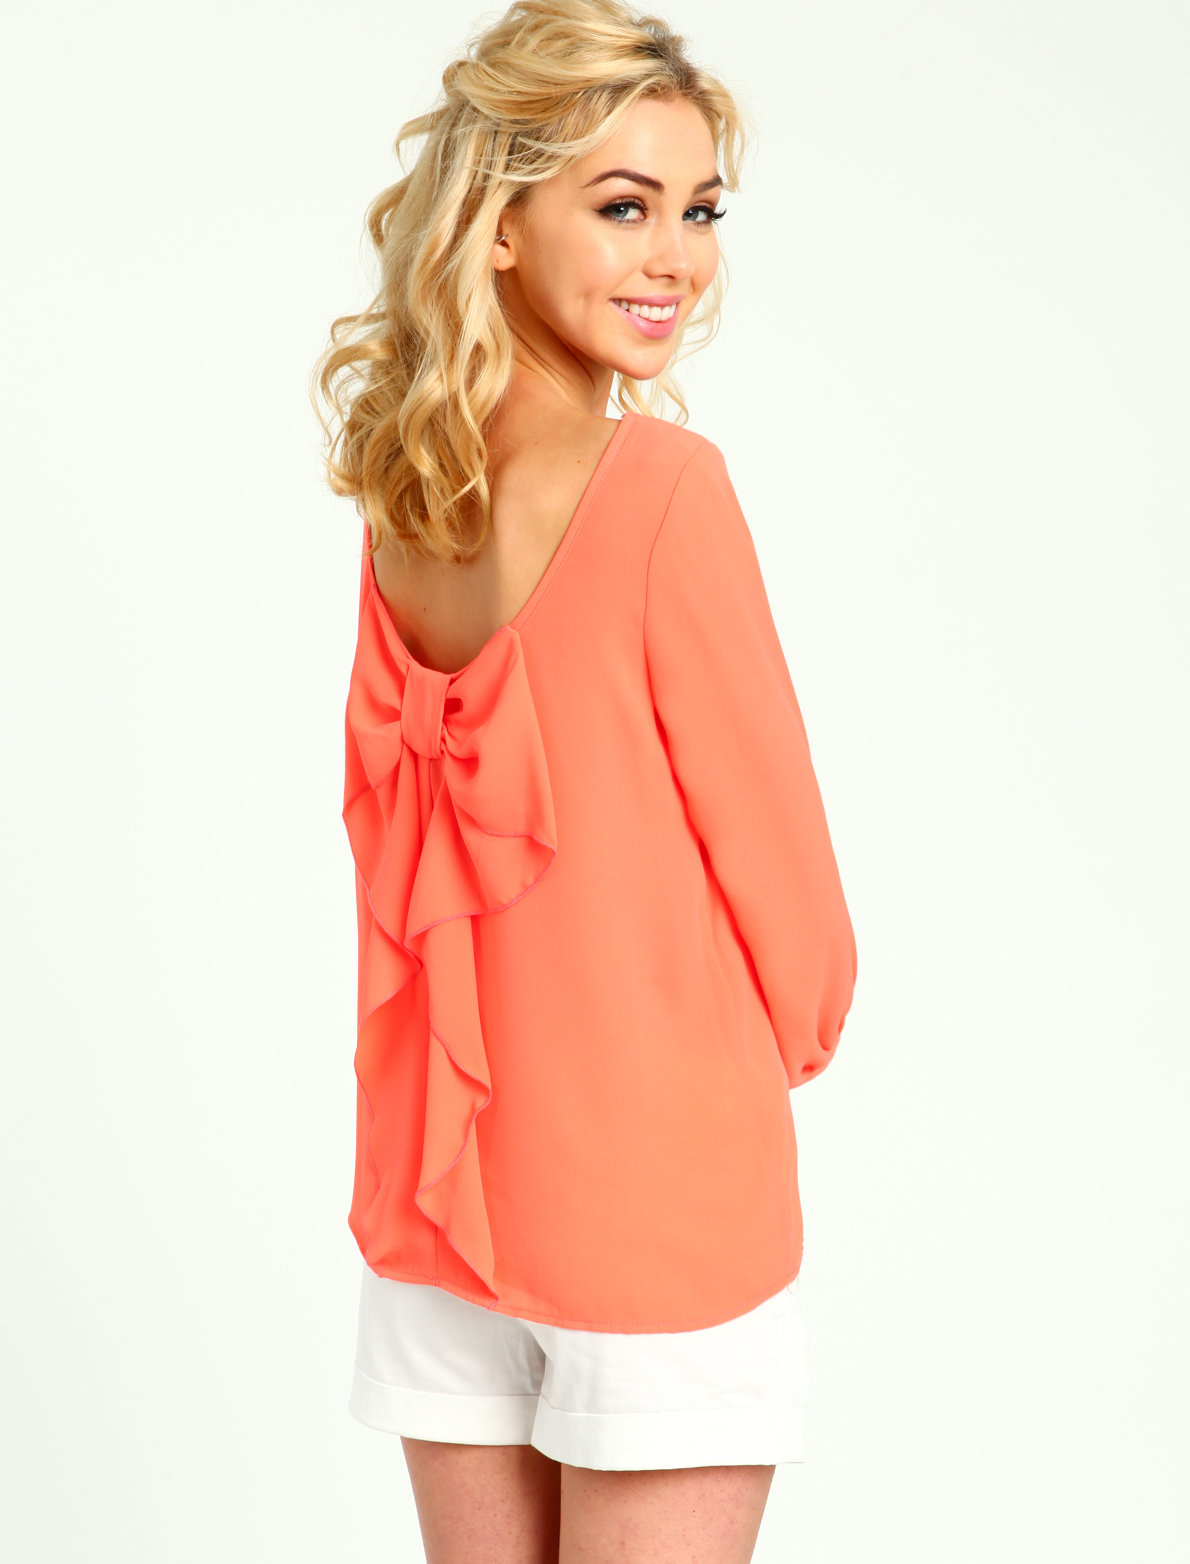 Shop for Bow Blouse at rusticzcountrysstylexhomedecor.tk Free Shipping. Free Returns. All the time.